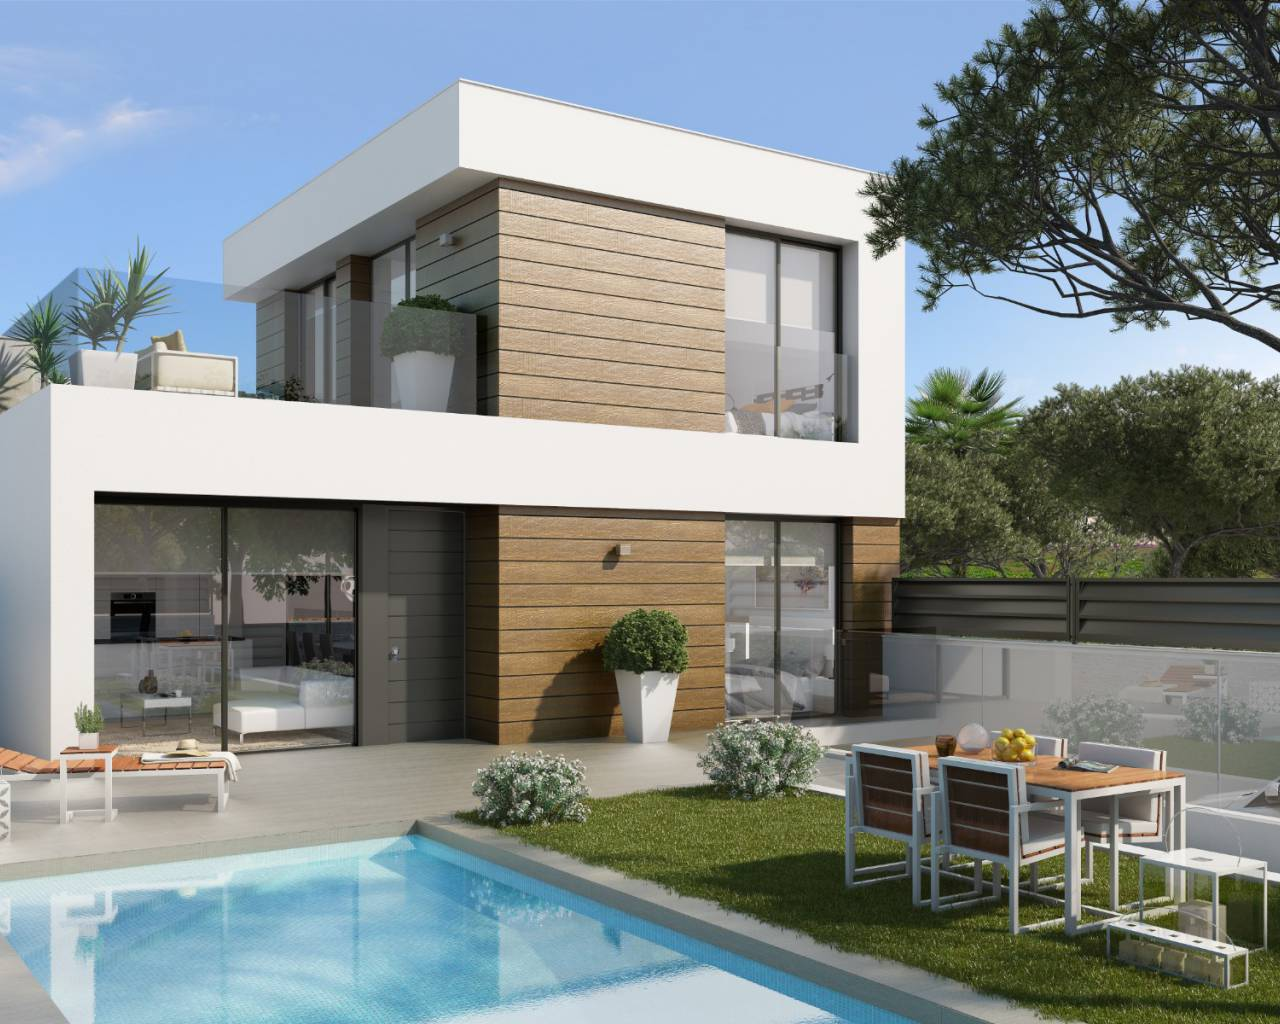 Detached Villa - New Build - El Campello - El Campello - Els Banyets Urbanisation